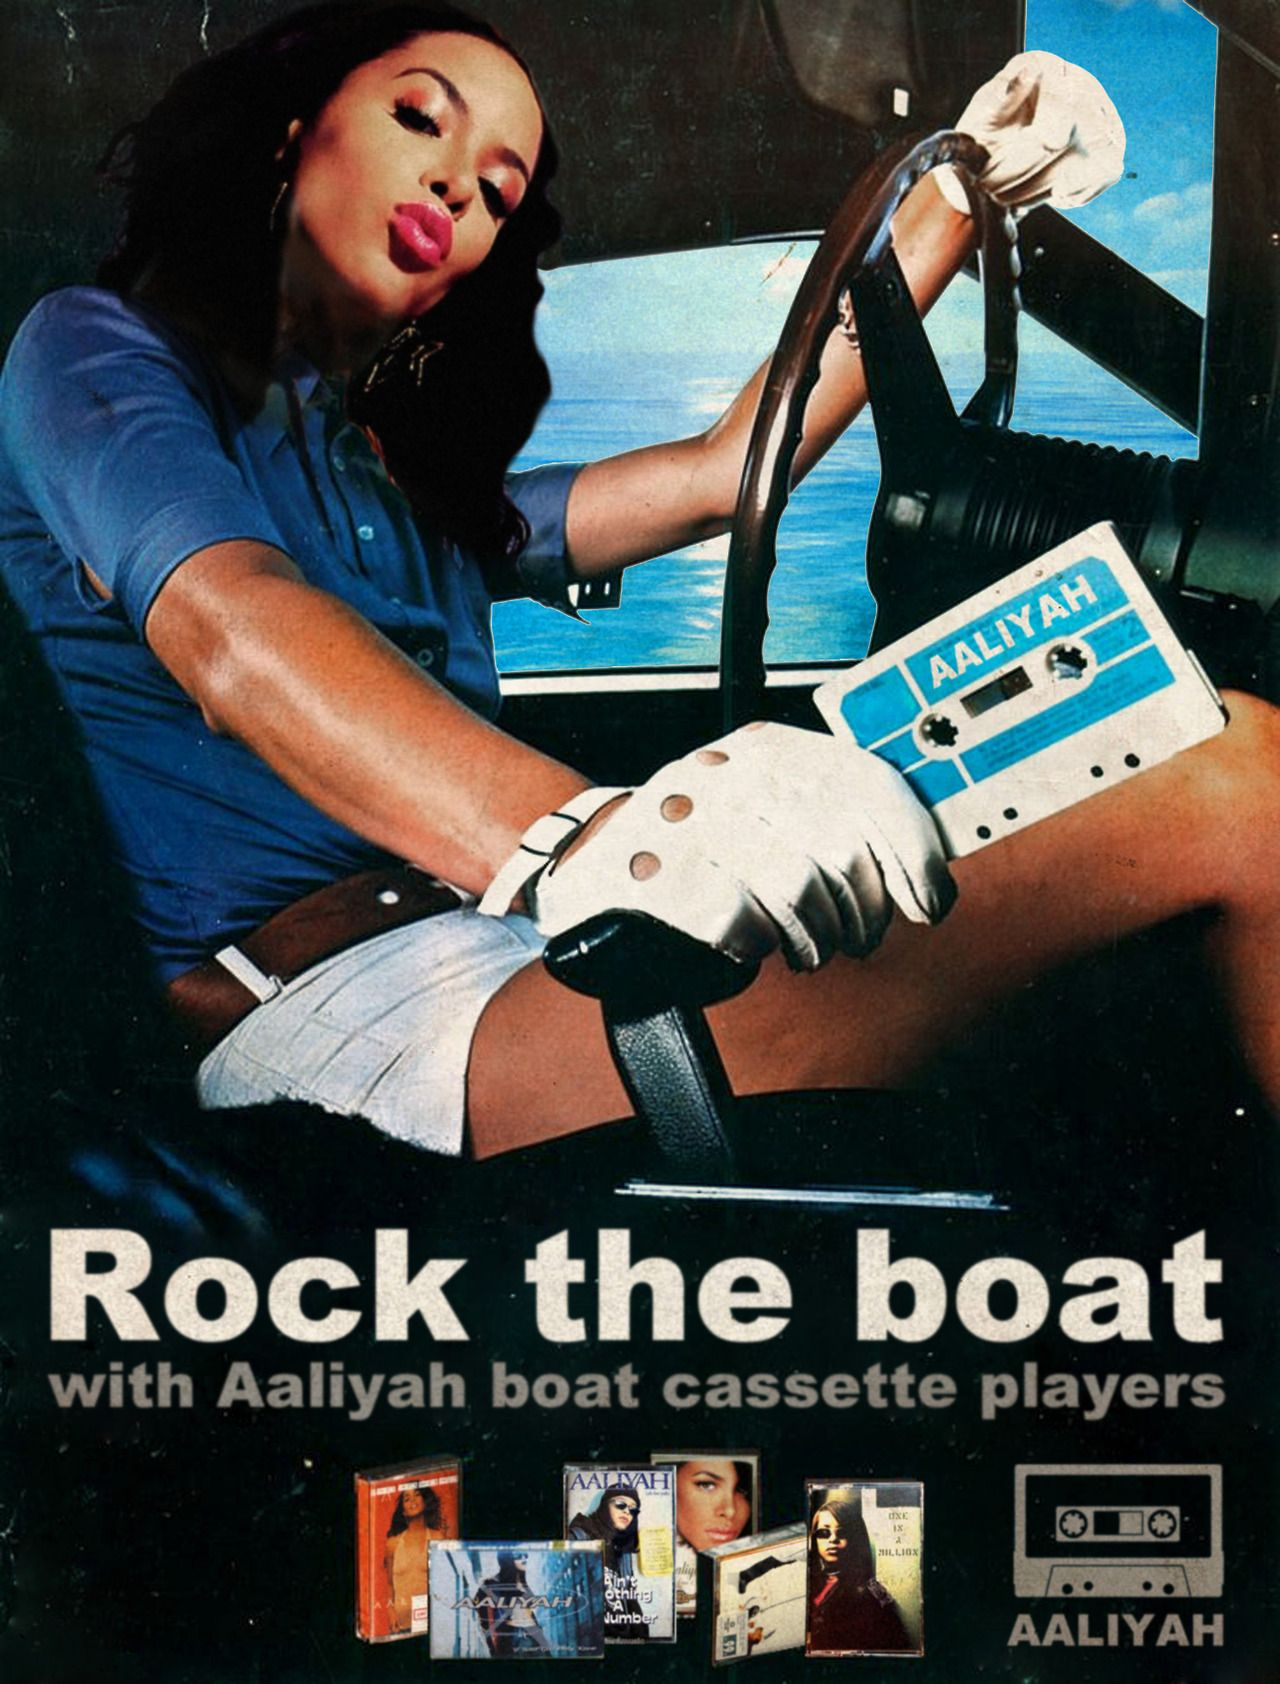 Rock the boat / Aaliyah © Ads Libitum : facebook / tumblr / behance